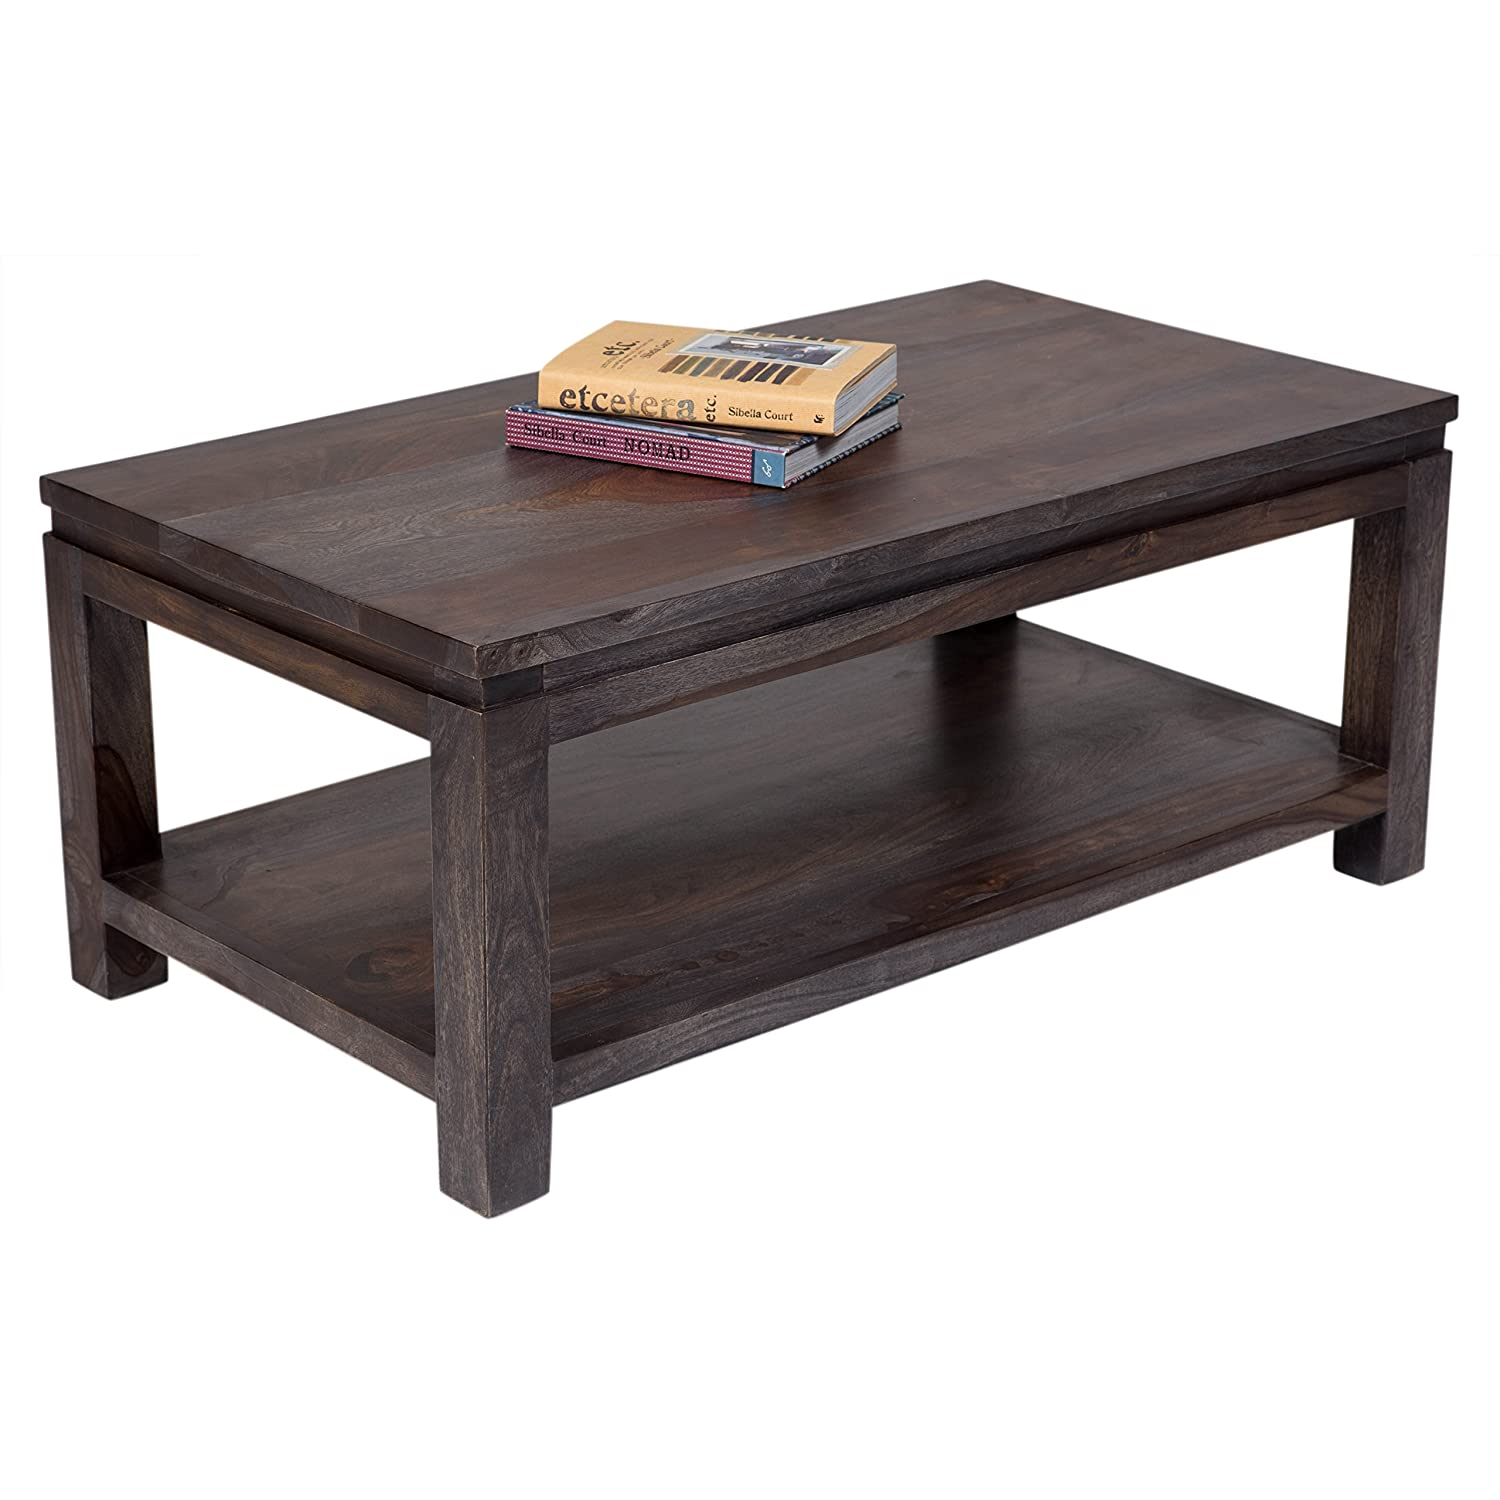 Fantastic Porter Designs Sb Gs17 Big Sur Coffee Table Onthecornerstone Fun Painted Chair Ideas Images Onthecornerstoneorg